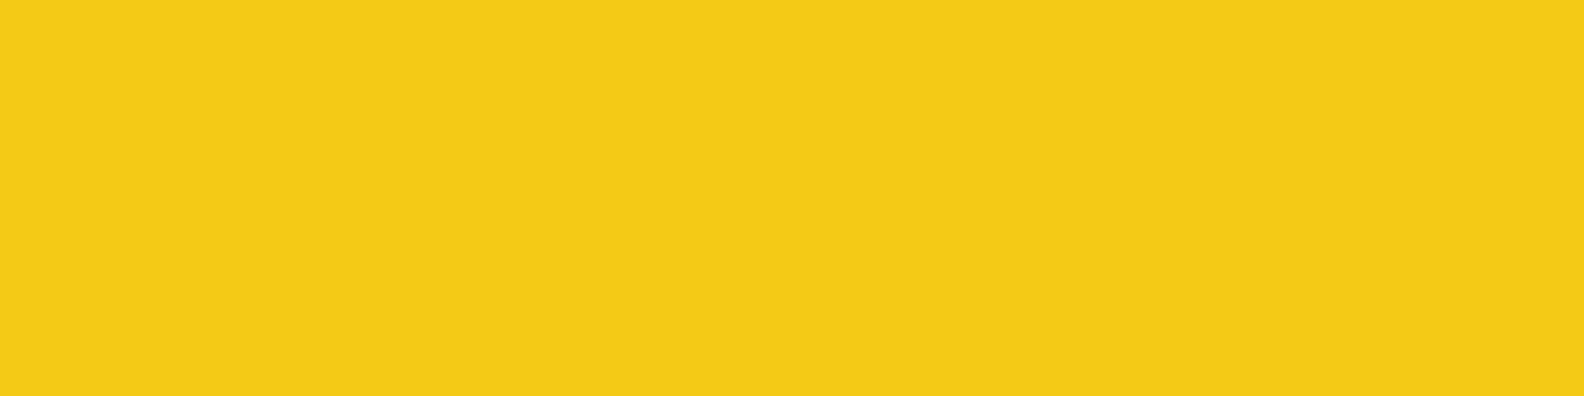 1584x396 Jonquil Solid Color Background